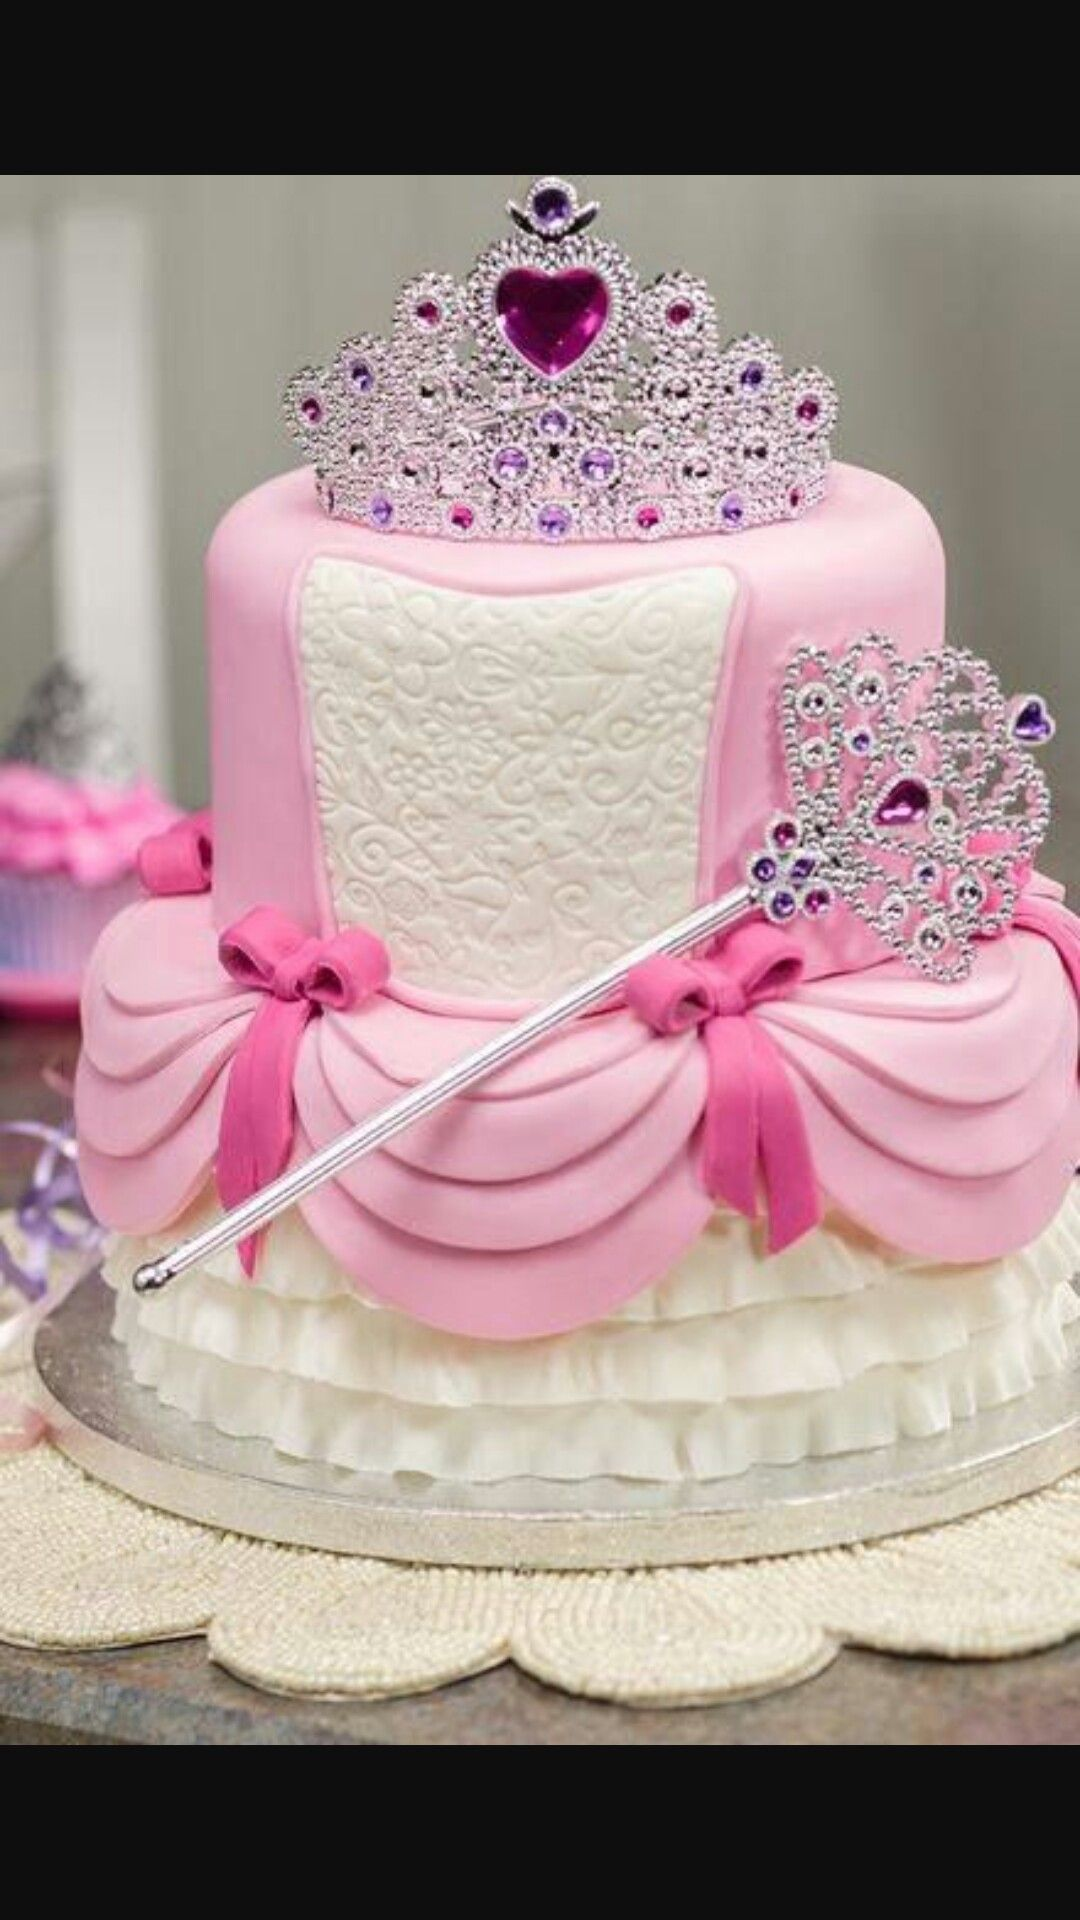 Pin By Cynthia Briche On Idees Decoration Gateaux Cute Birthday Cakes Princess Birthday Cake Girl Cakes